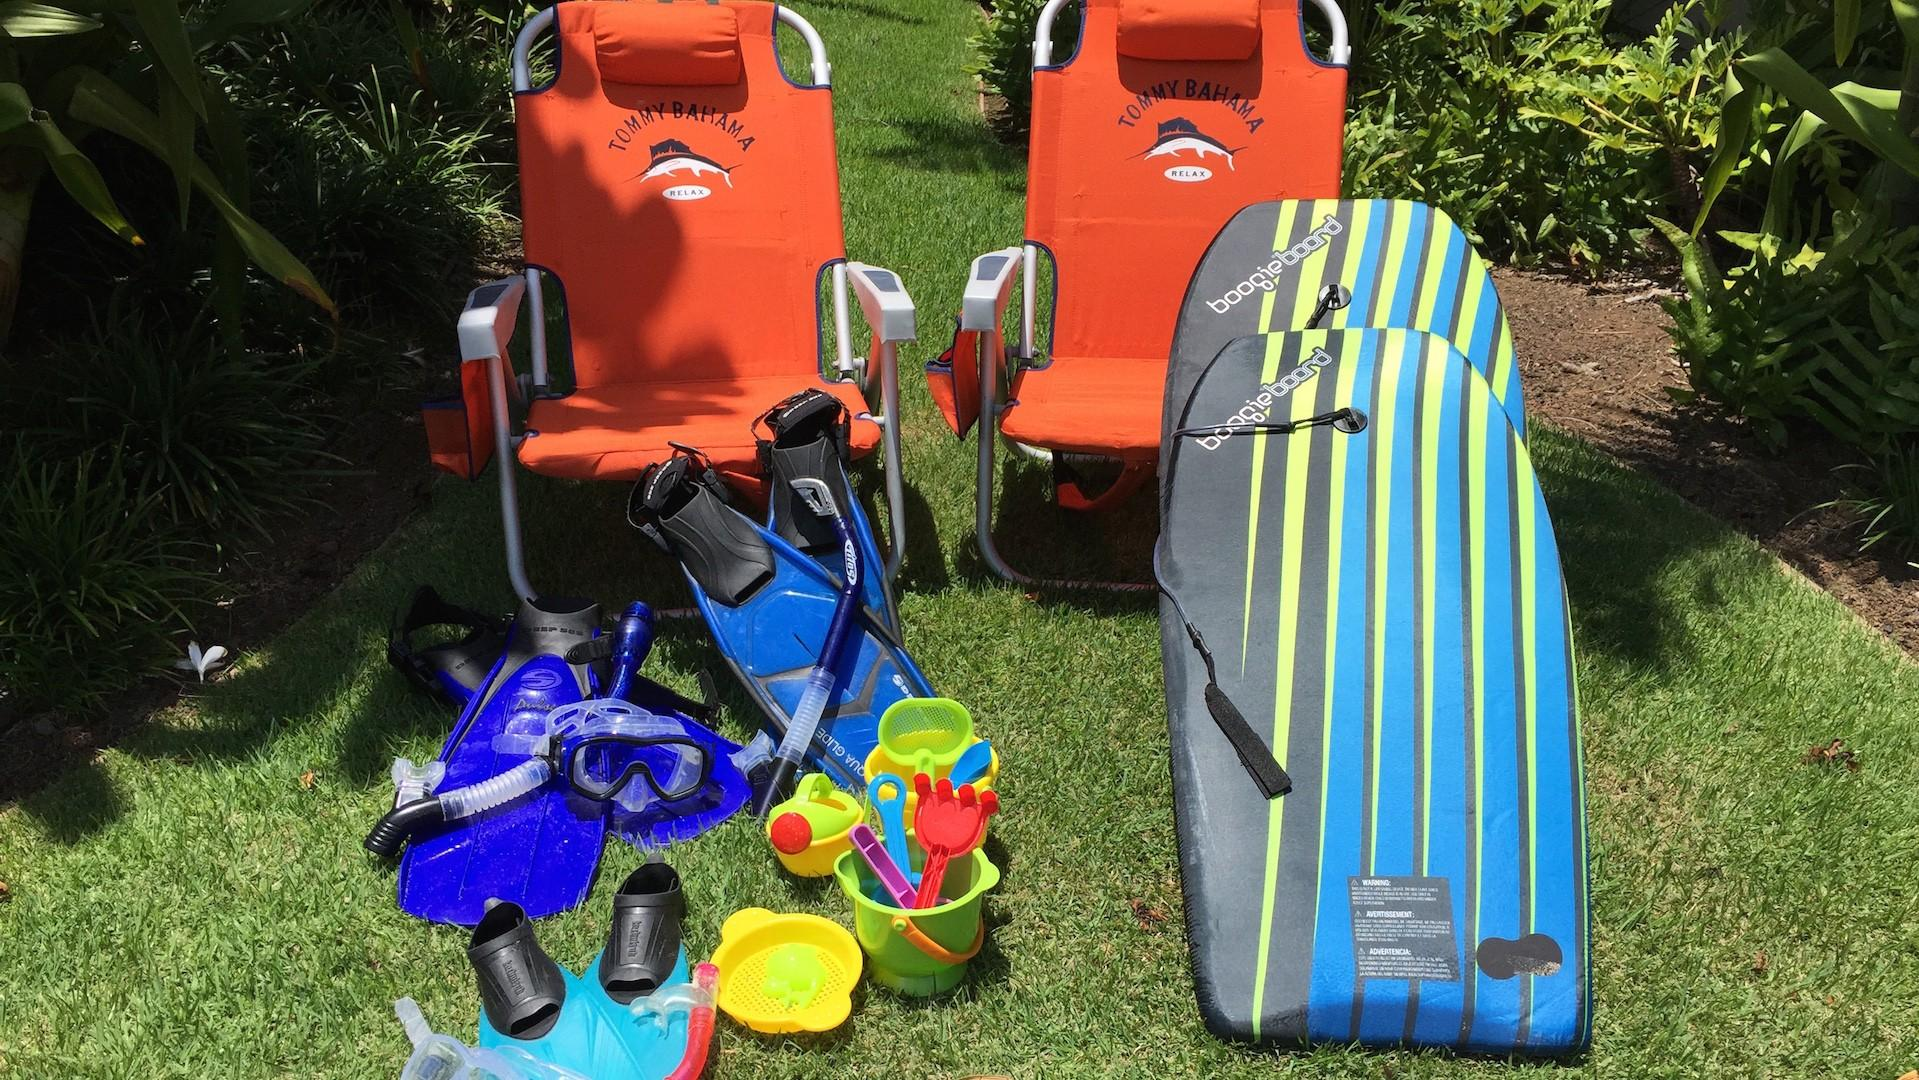 Beach amenities such as boogie boards, beach chairs, snorkel gear and more are included with your rental to make the most of your island getaway.